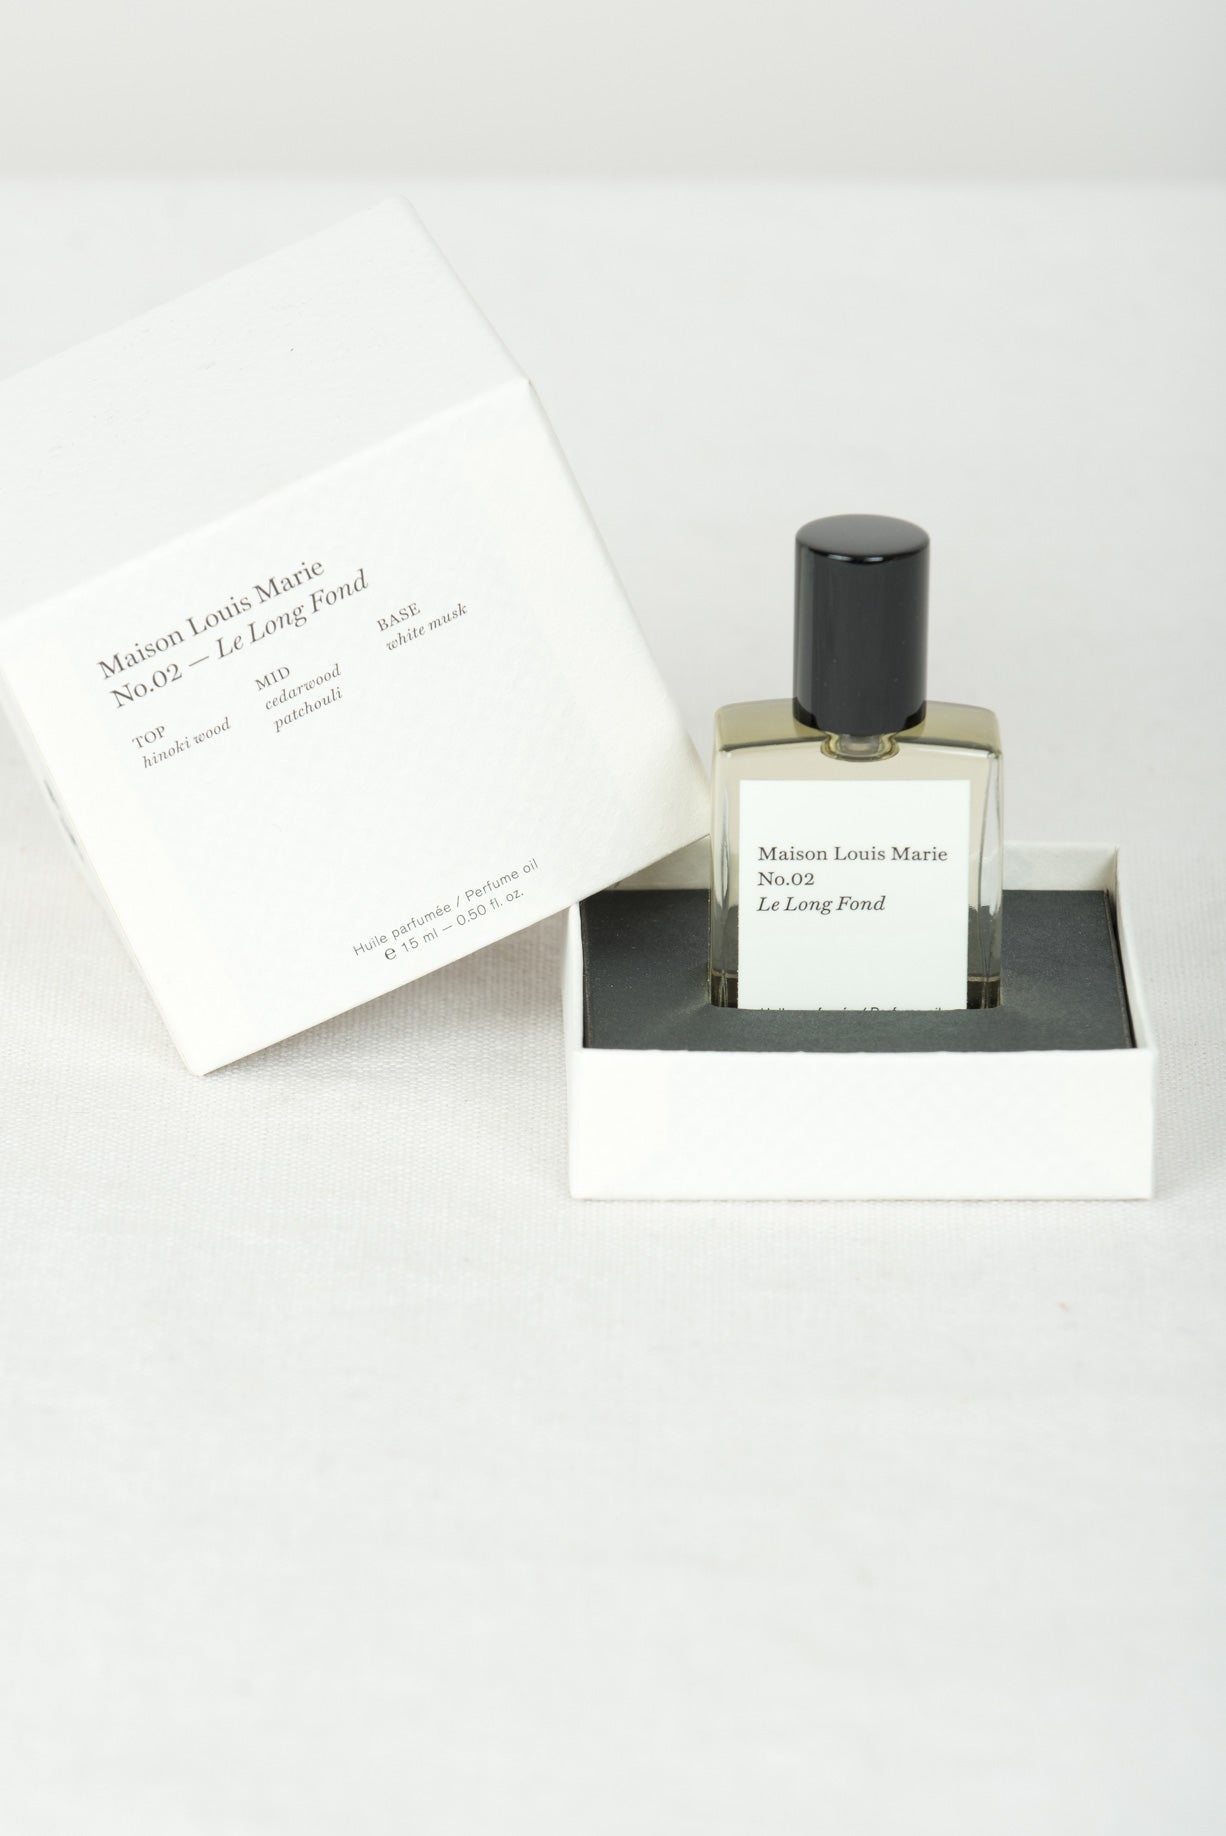 No. 02 Le Long Fond Perfume Oil